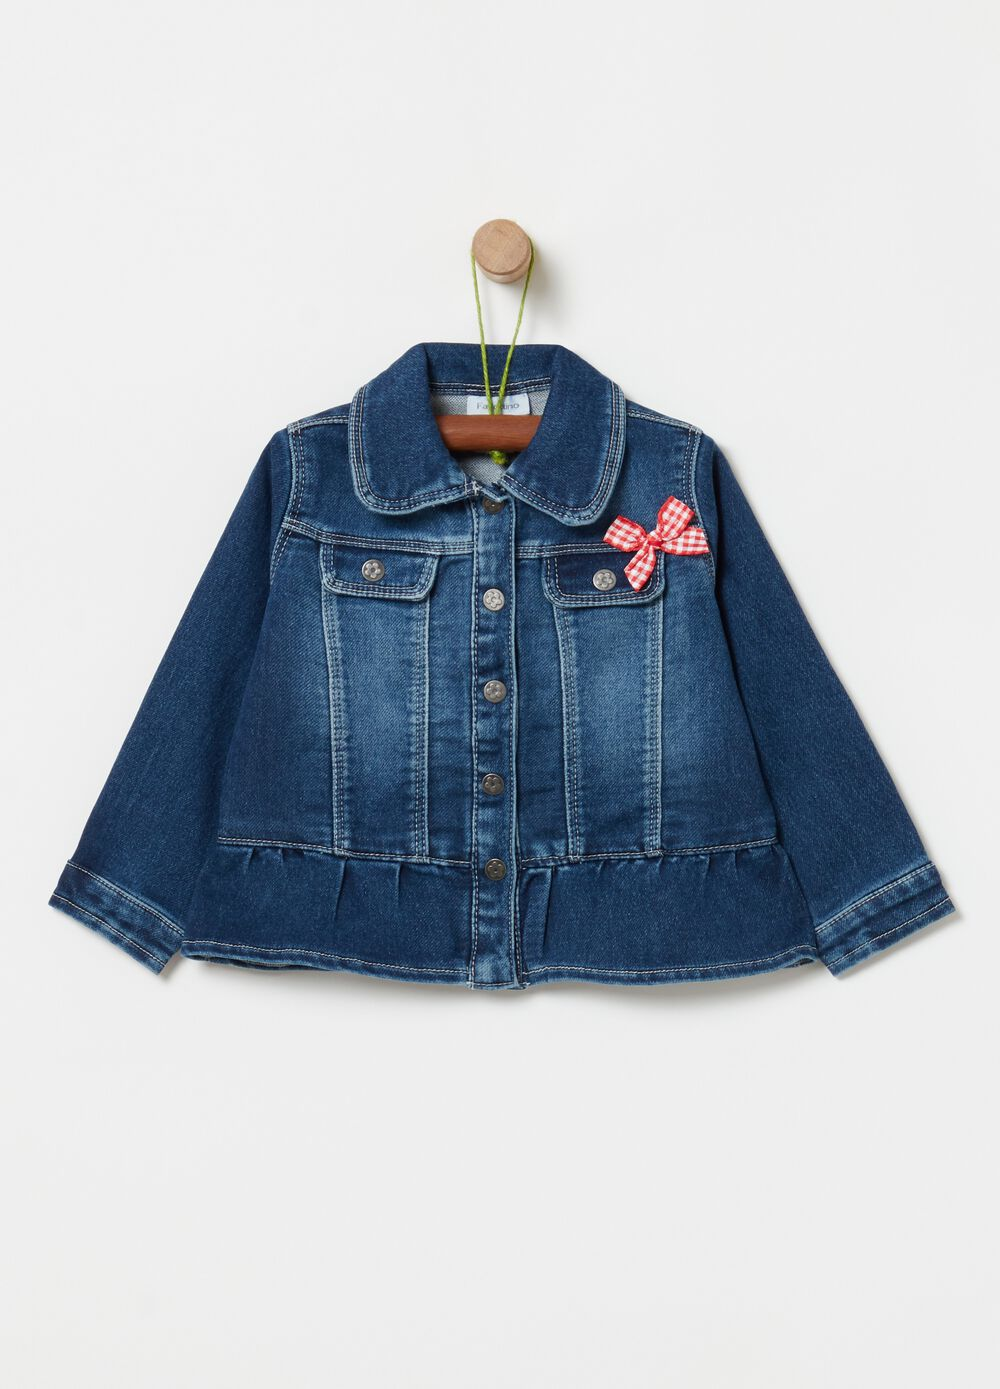 Denim jacket with bow